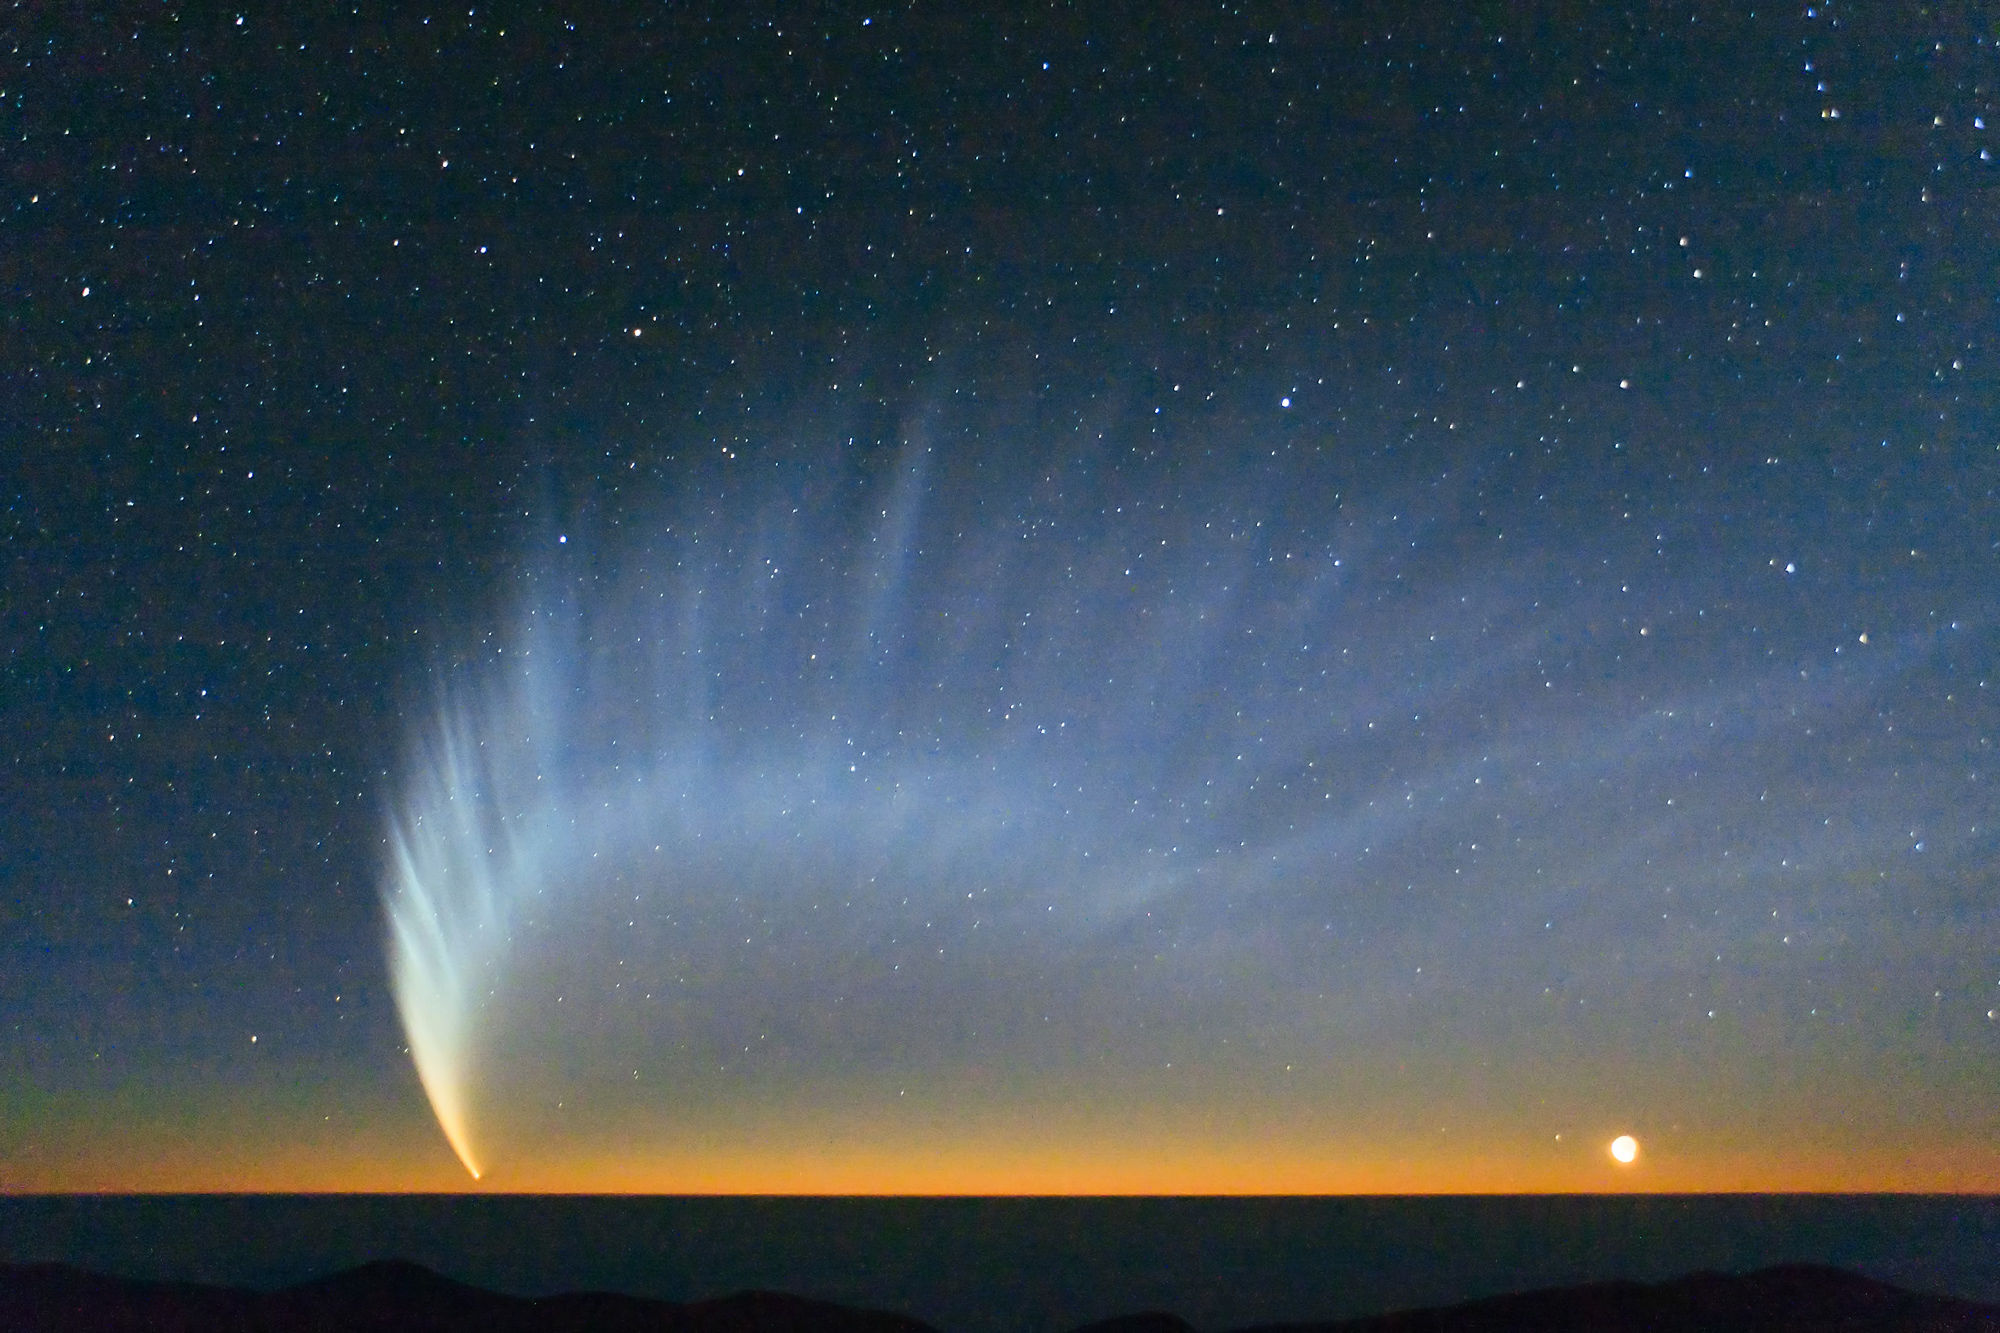 13,000 years ago, a comet may have nuked a Paleolithic village out of existence